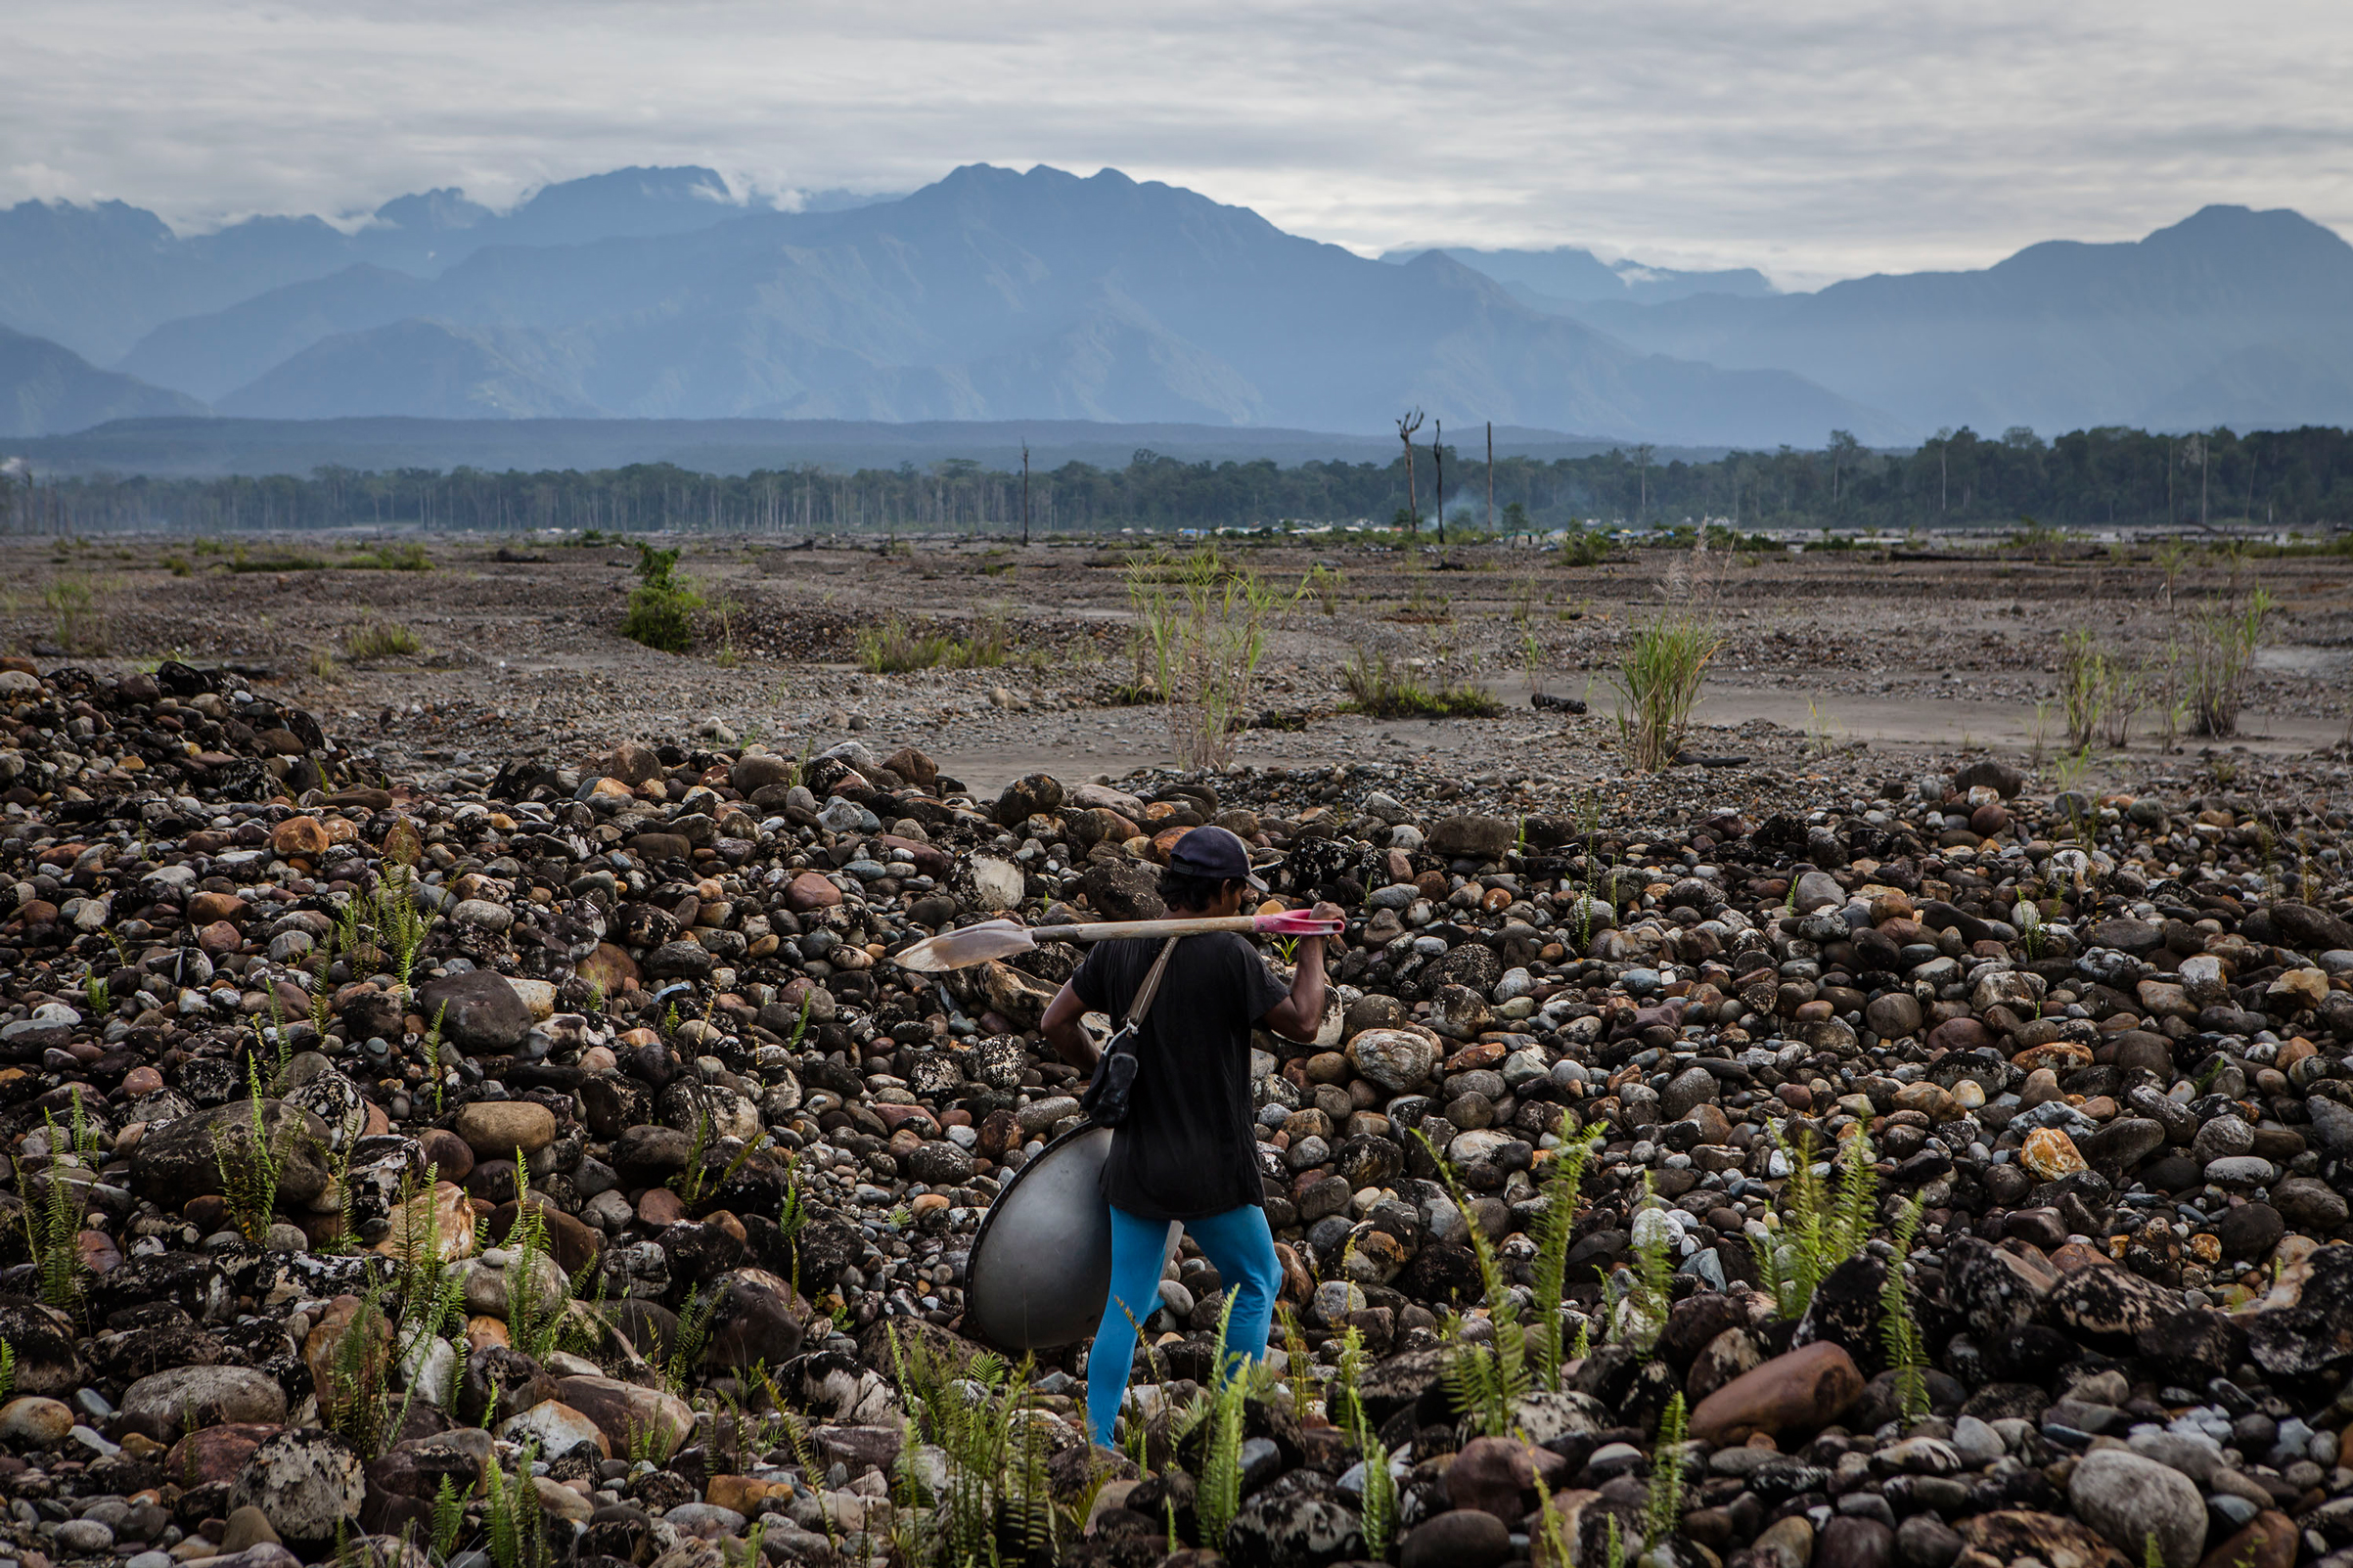 A illegal gold miner walks as they pan for gold along the Aikwa river are located within Freeport's official mining operations in Timika, Papua Province, Indonesia, on Feb. 4, 2017.